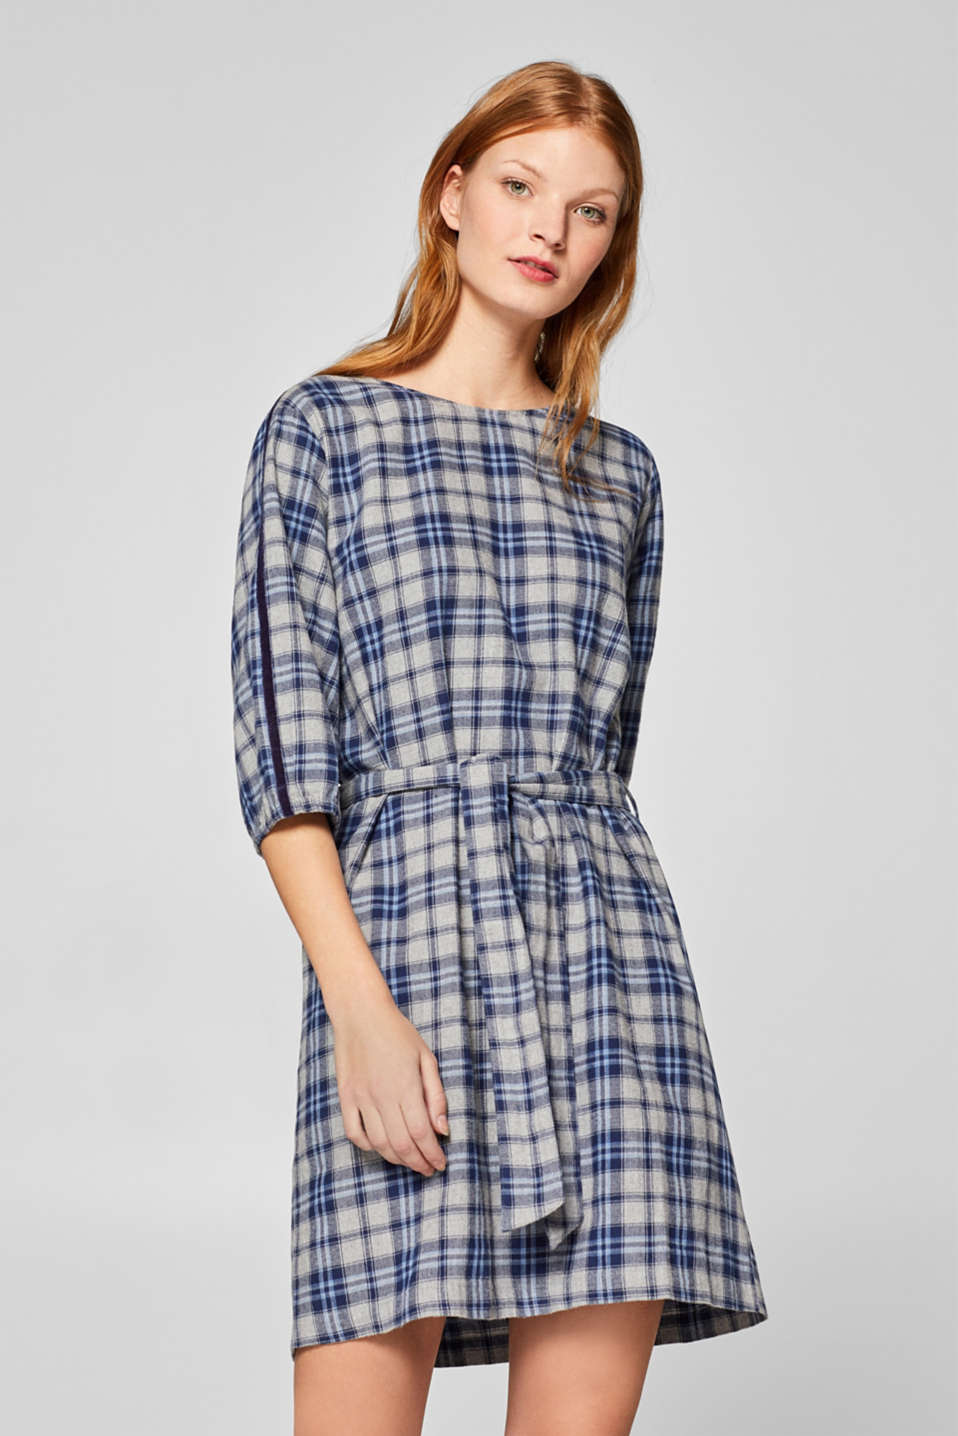 Esprit - Check flannel dress, 100% cotton